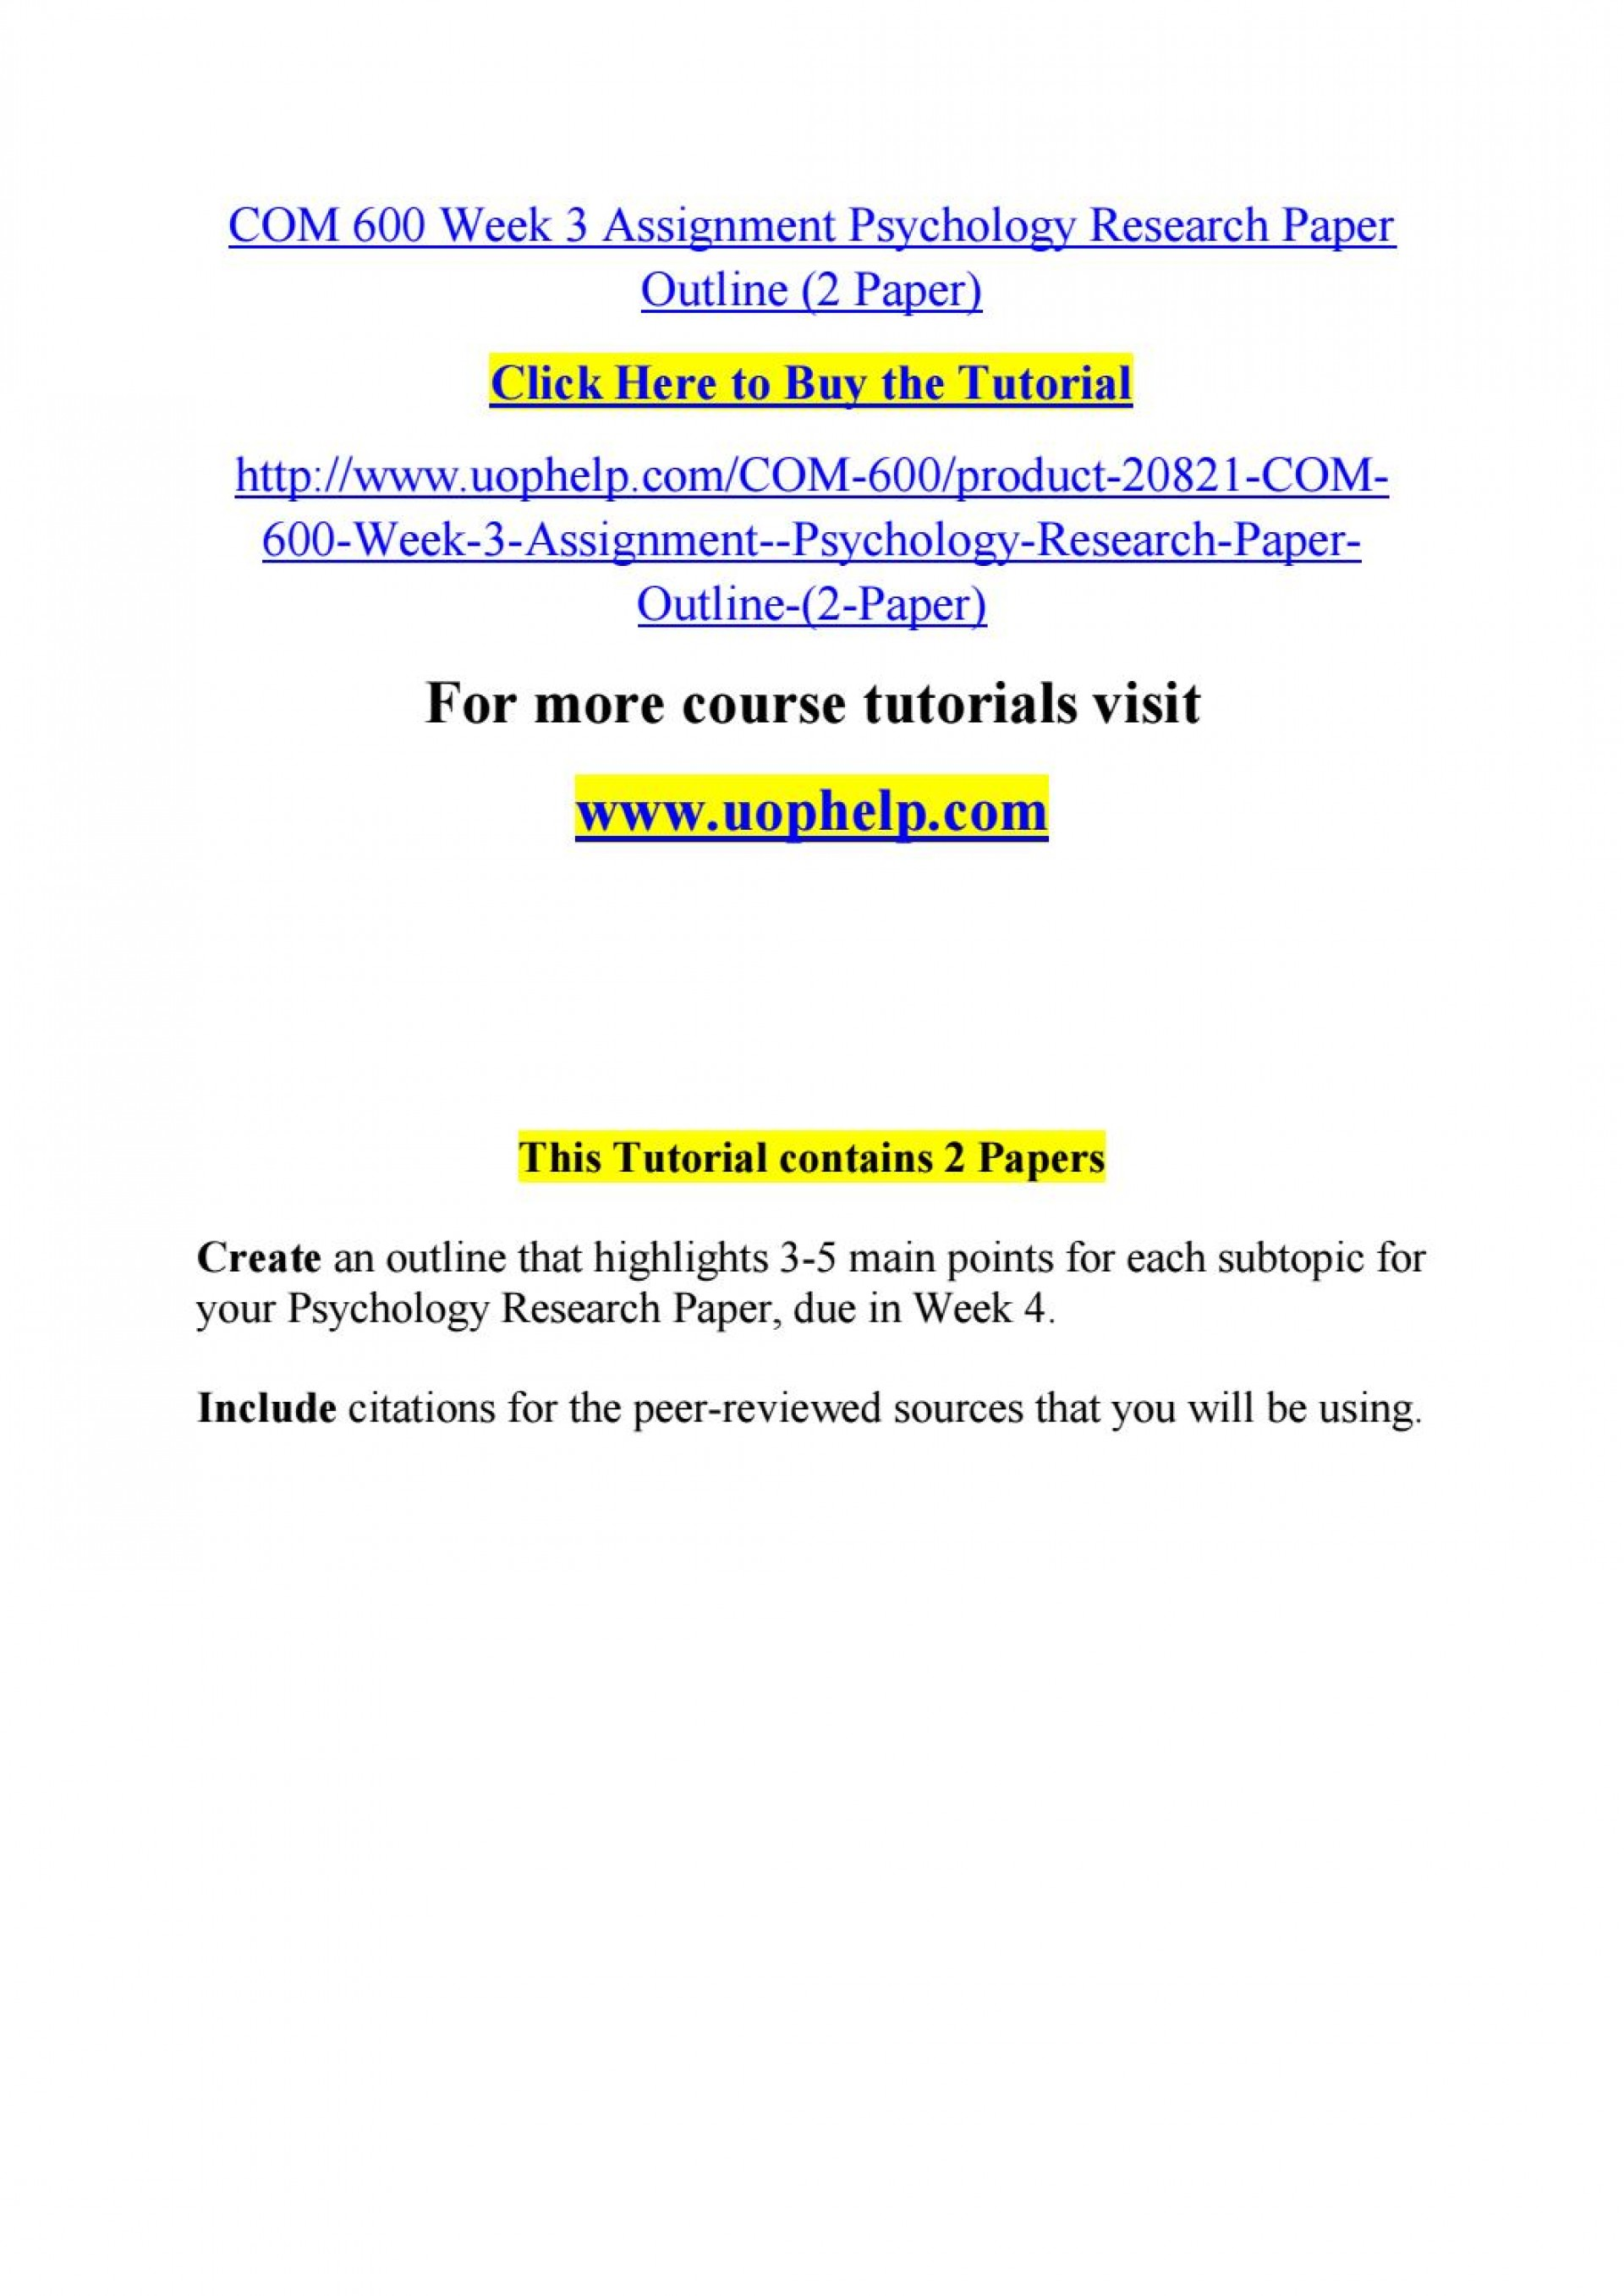 007 Psychology Research Paper Outline Com Page 1 Striking 600 Com/600 1920